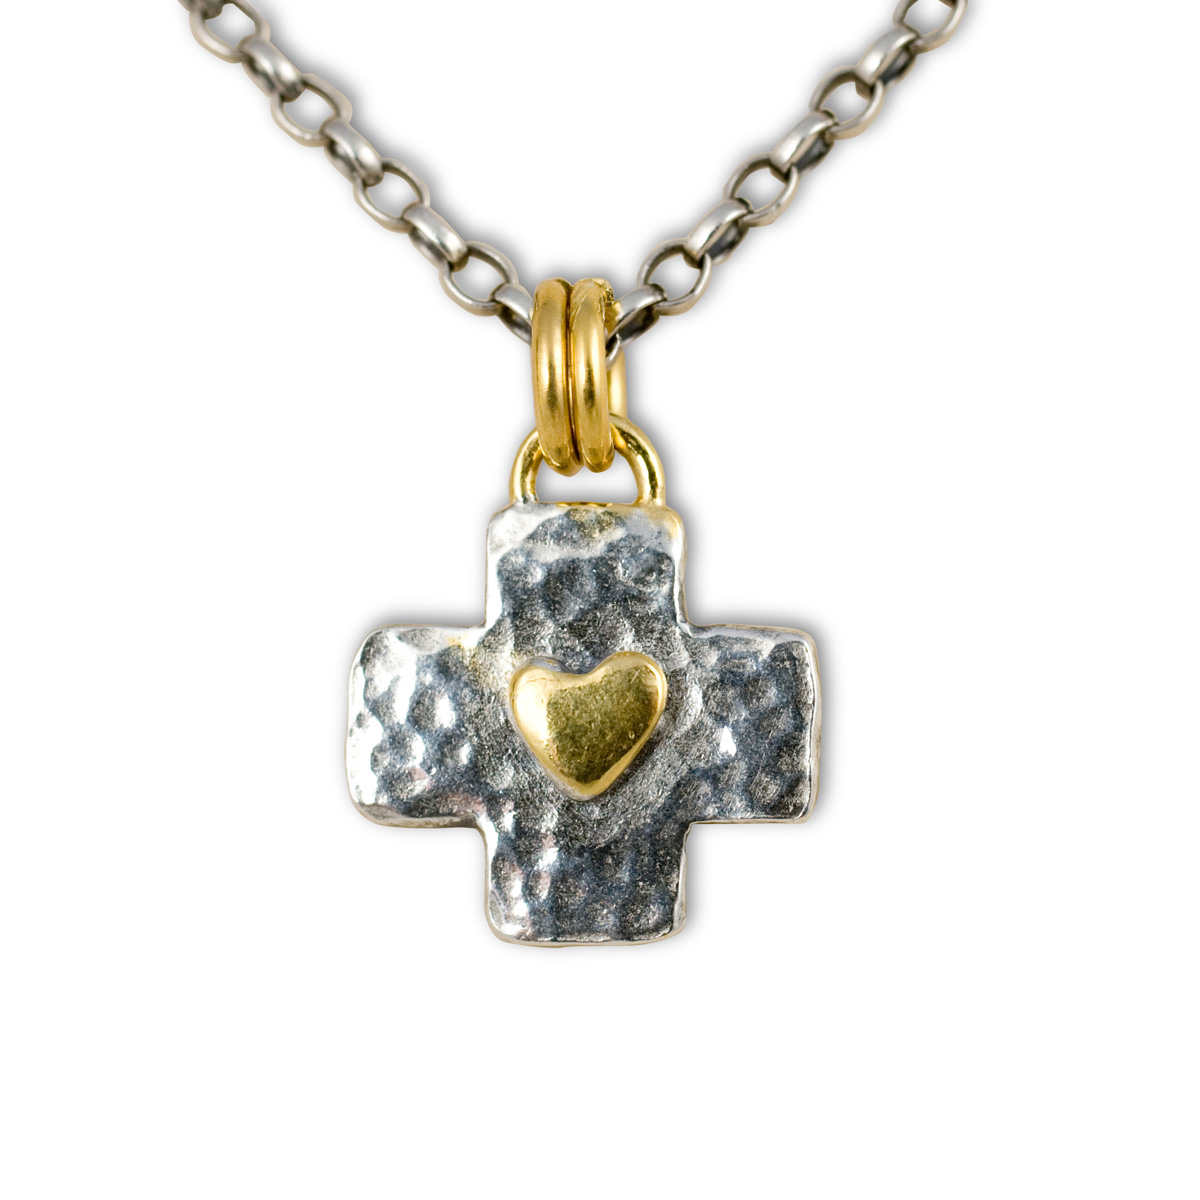 square yellow pendant gold ankh crosses cross diamond mens